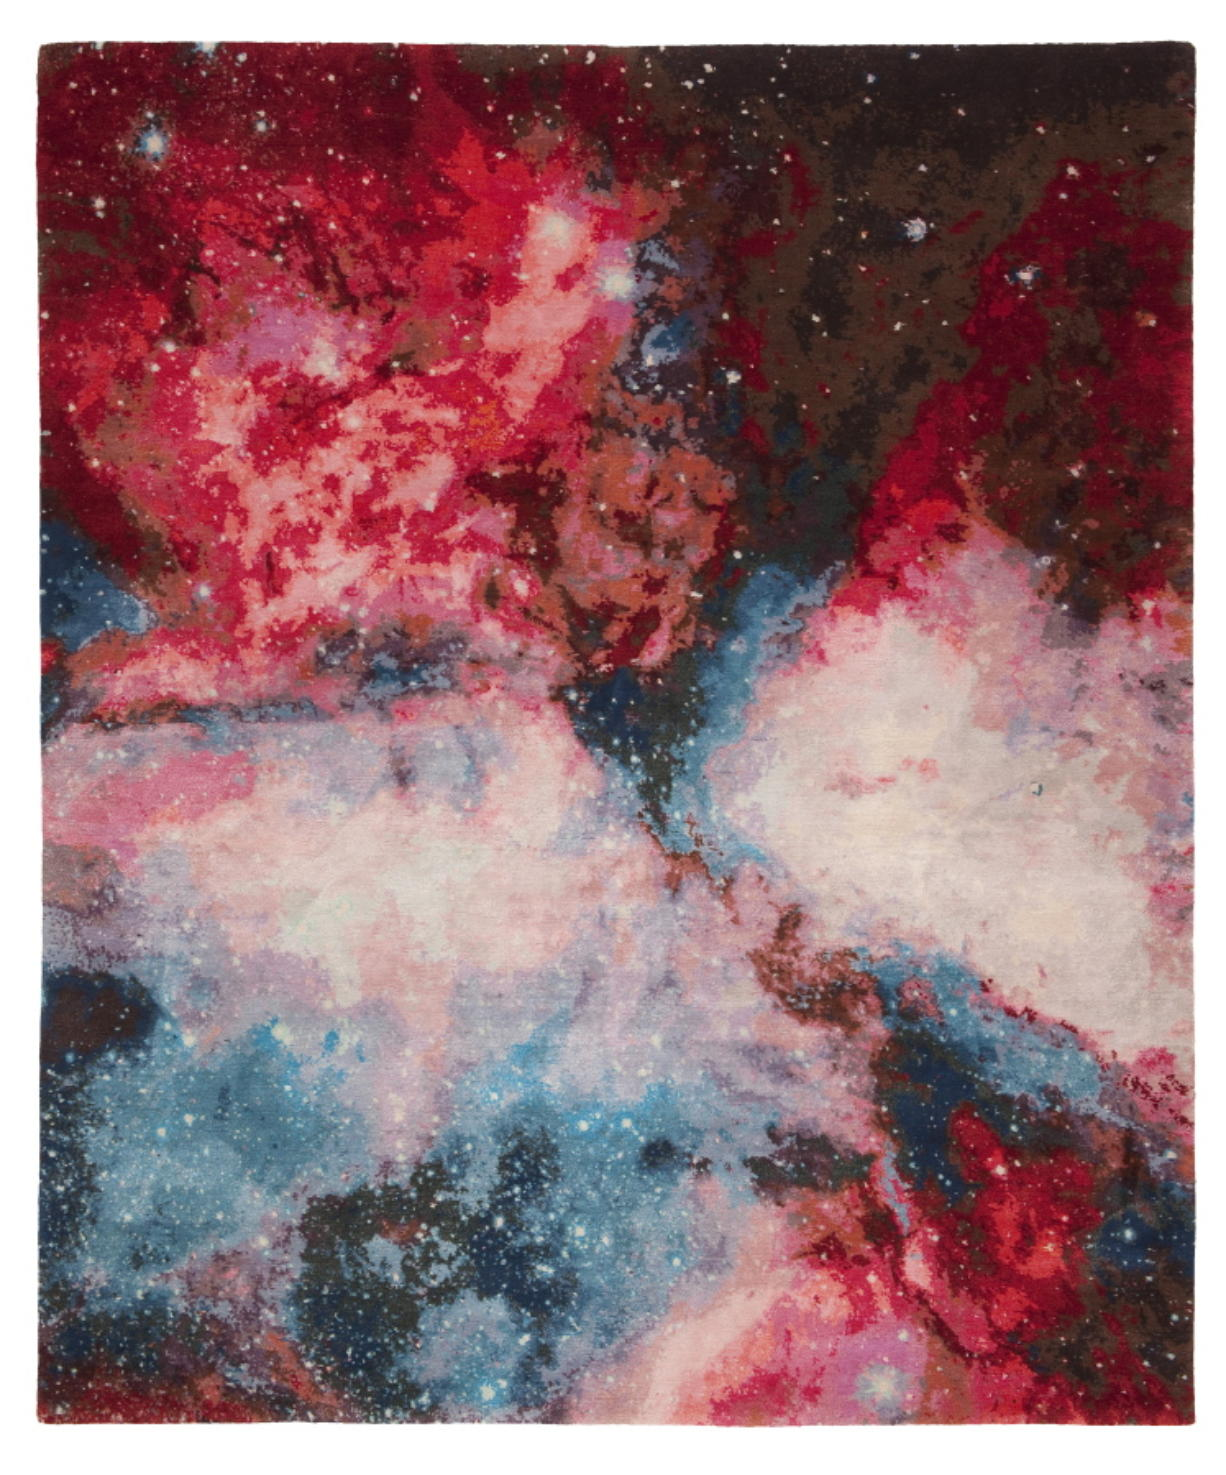 This image provided by Jan Kath Design GmbH shows an outer space themed rug. German designer Jan Kath has created a rug collection called Spacecrafted inspired by imagery of gas clouds and asteroid nebulae from the Hubble telescope.